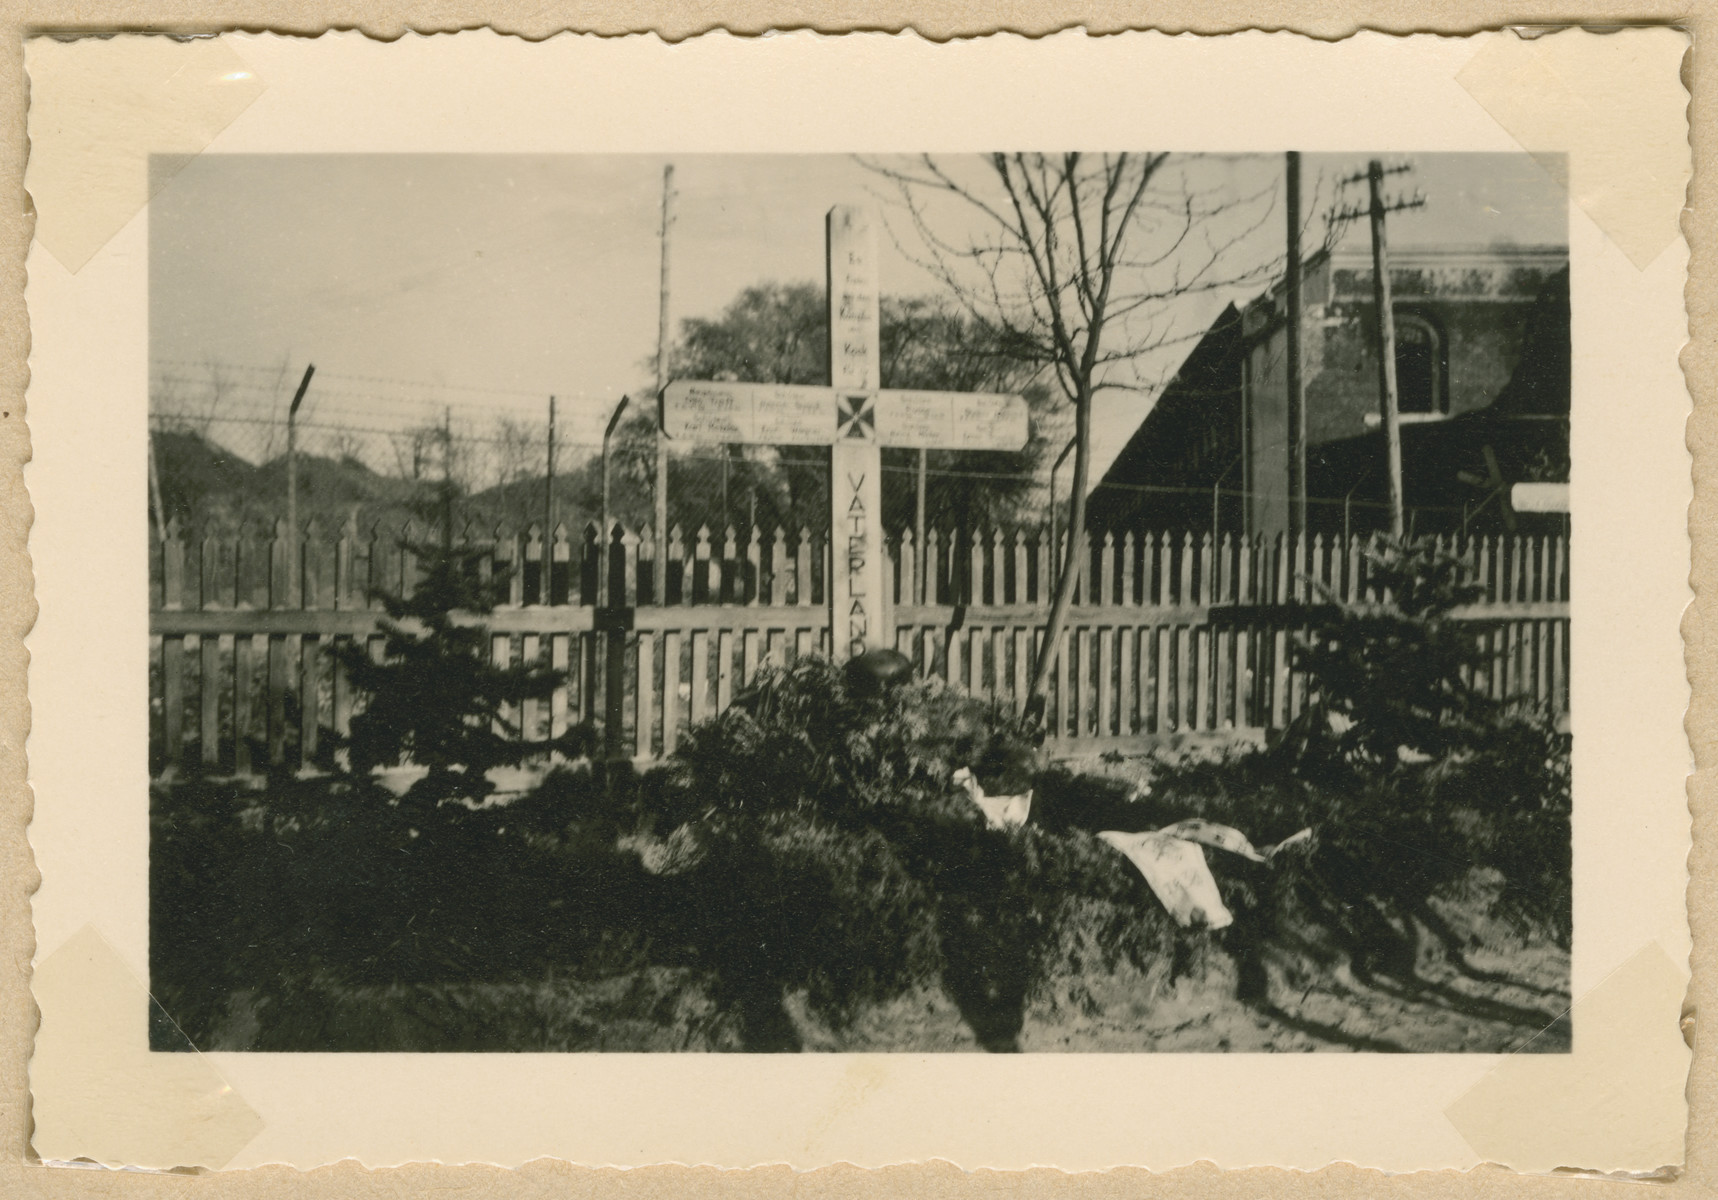 """View of a grave marker for a German soldier buried in Irena.  Written on the cross is the inscription """"Fatherland."""""""